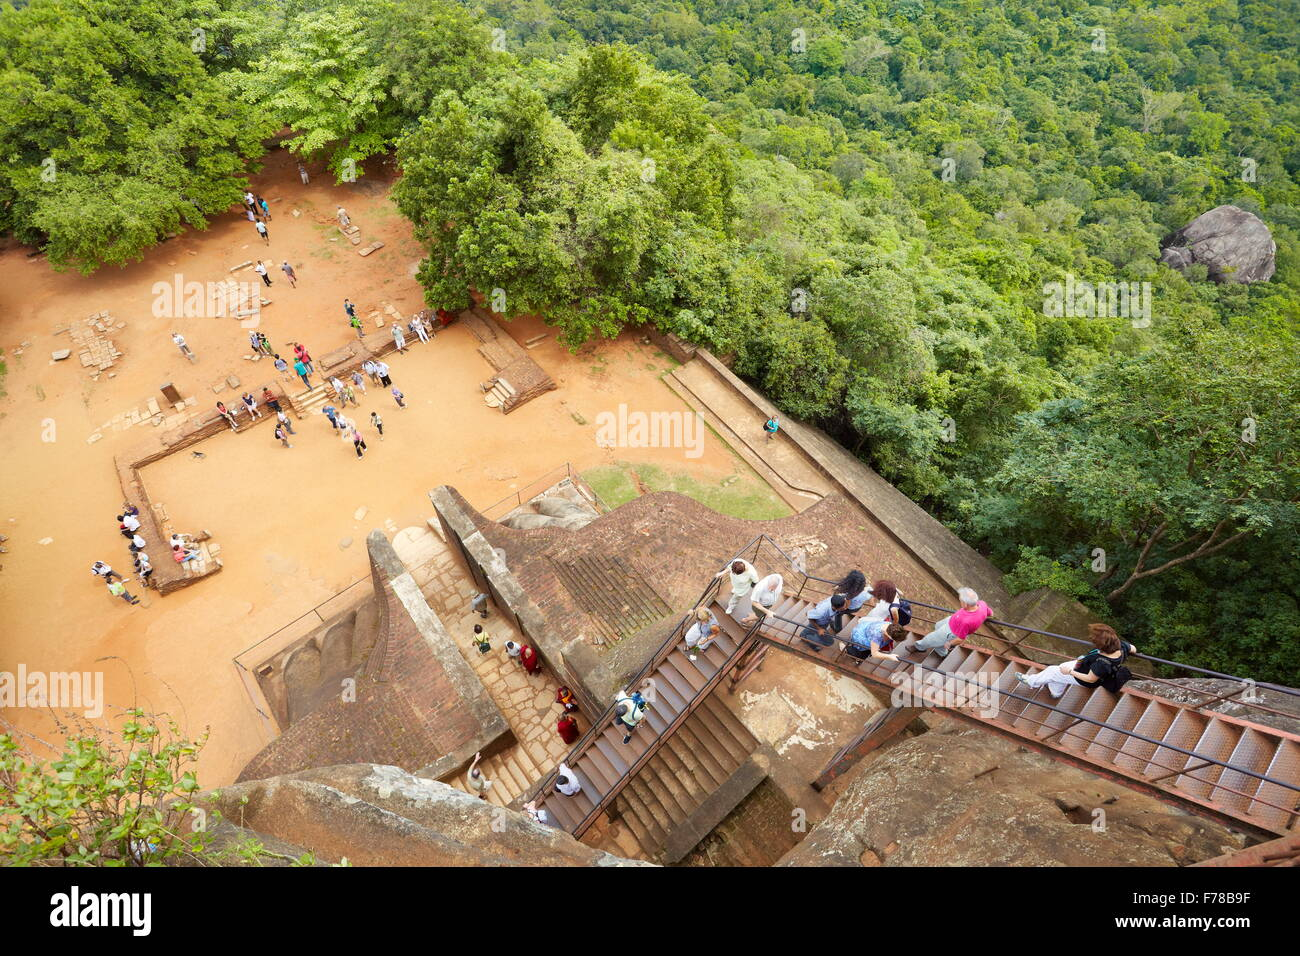 Sri Lanka - Sigiriya, stairs of Lion's Gate to the ancient fortress, UNESCO - Stock Image